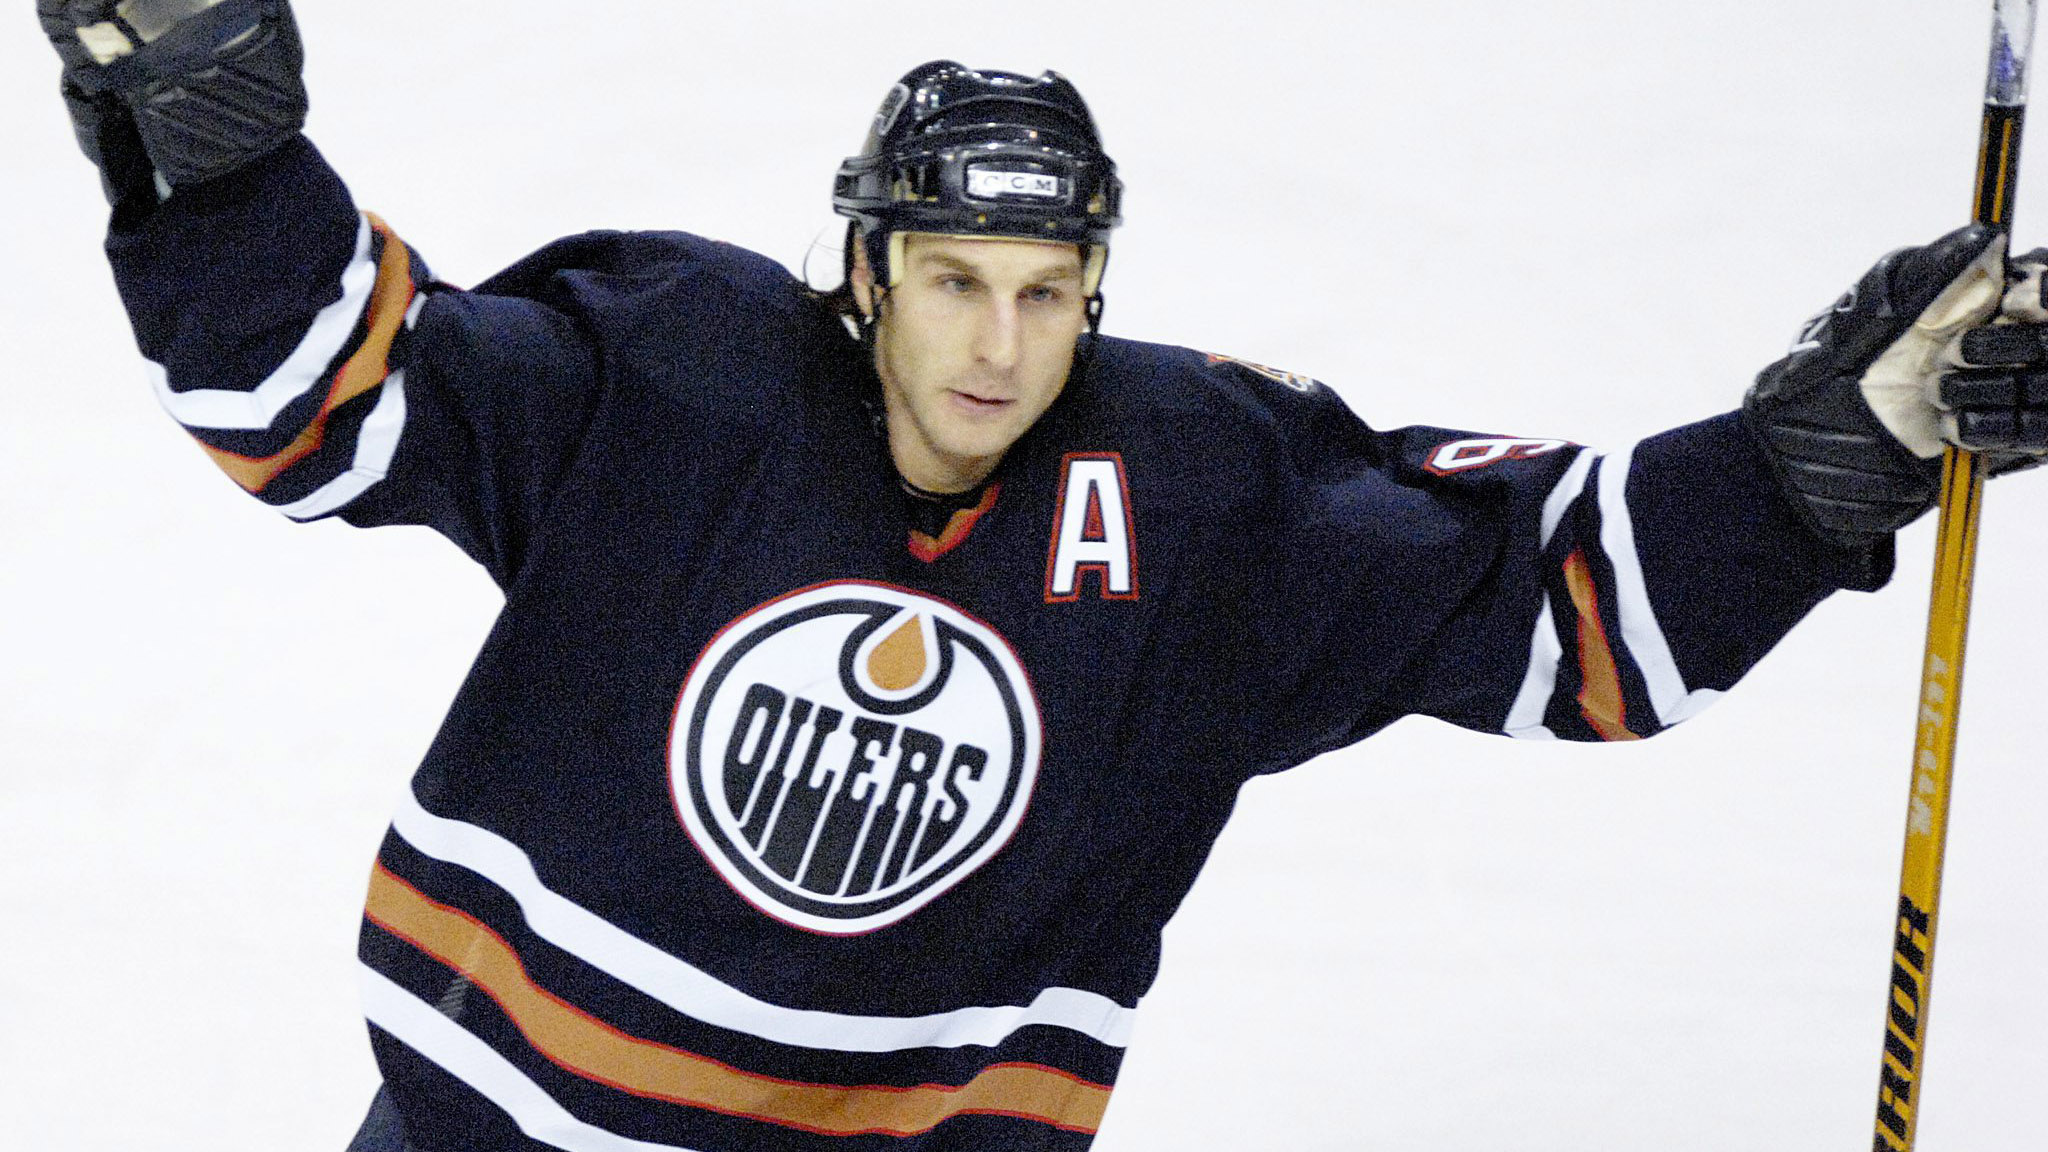 Ryan Smyth celebrates a goal with the Edmonton Oilers in 2007. (Jimmy Jeong/CP)